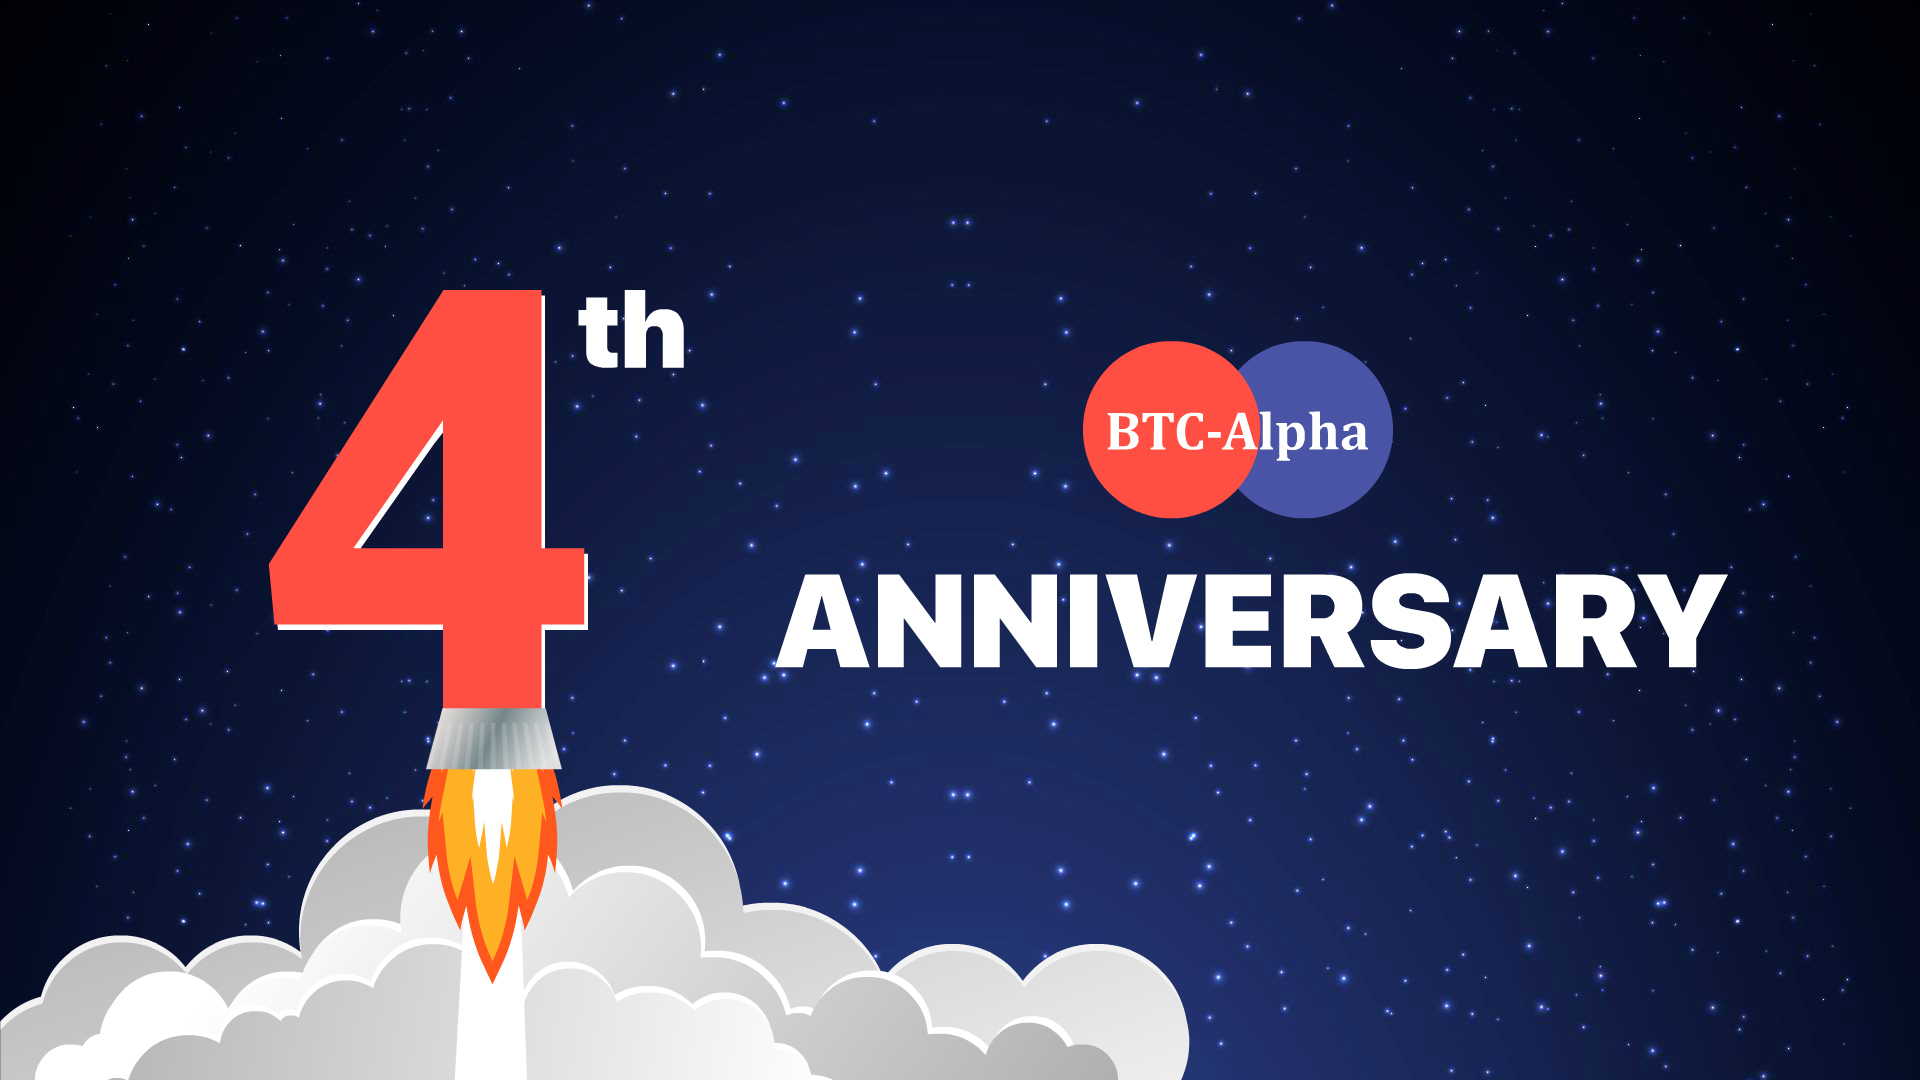 The BTC-Alpha cryptocurrency exchange turns 4 years old